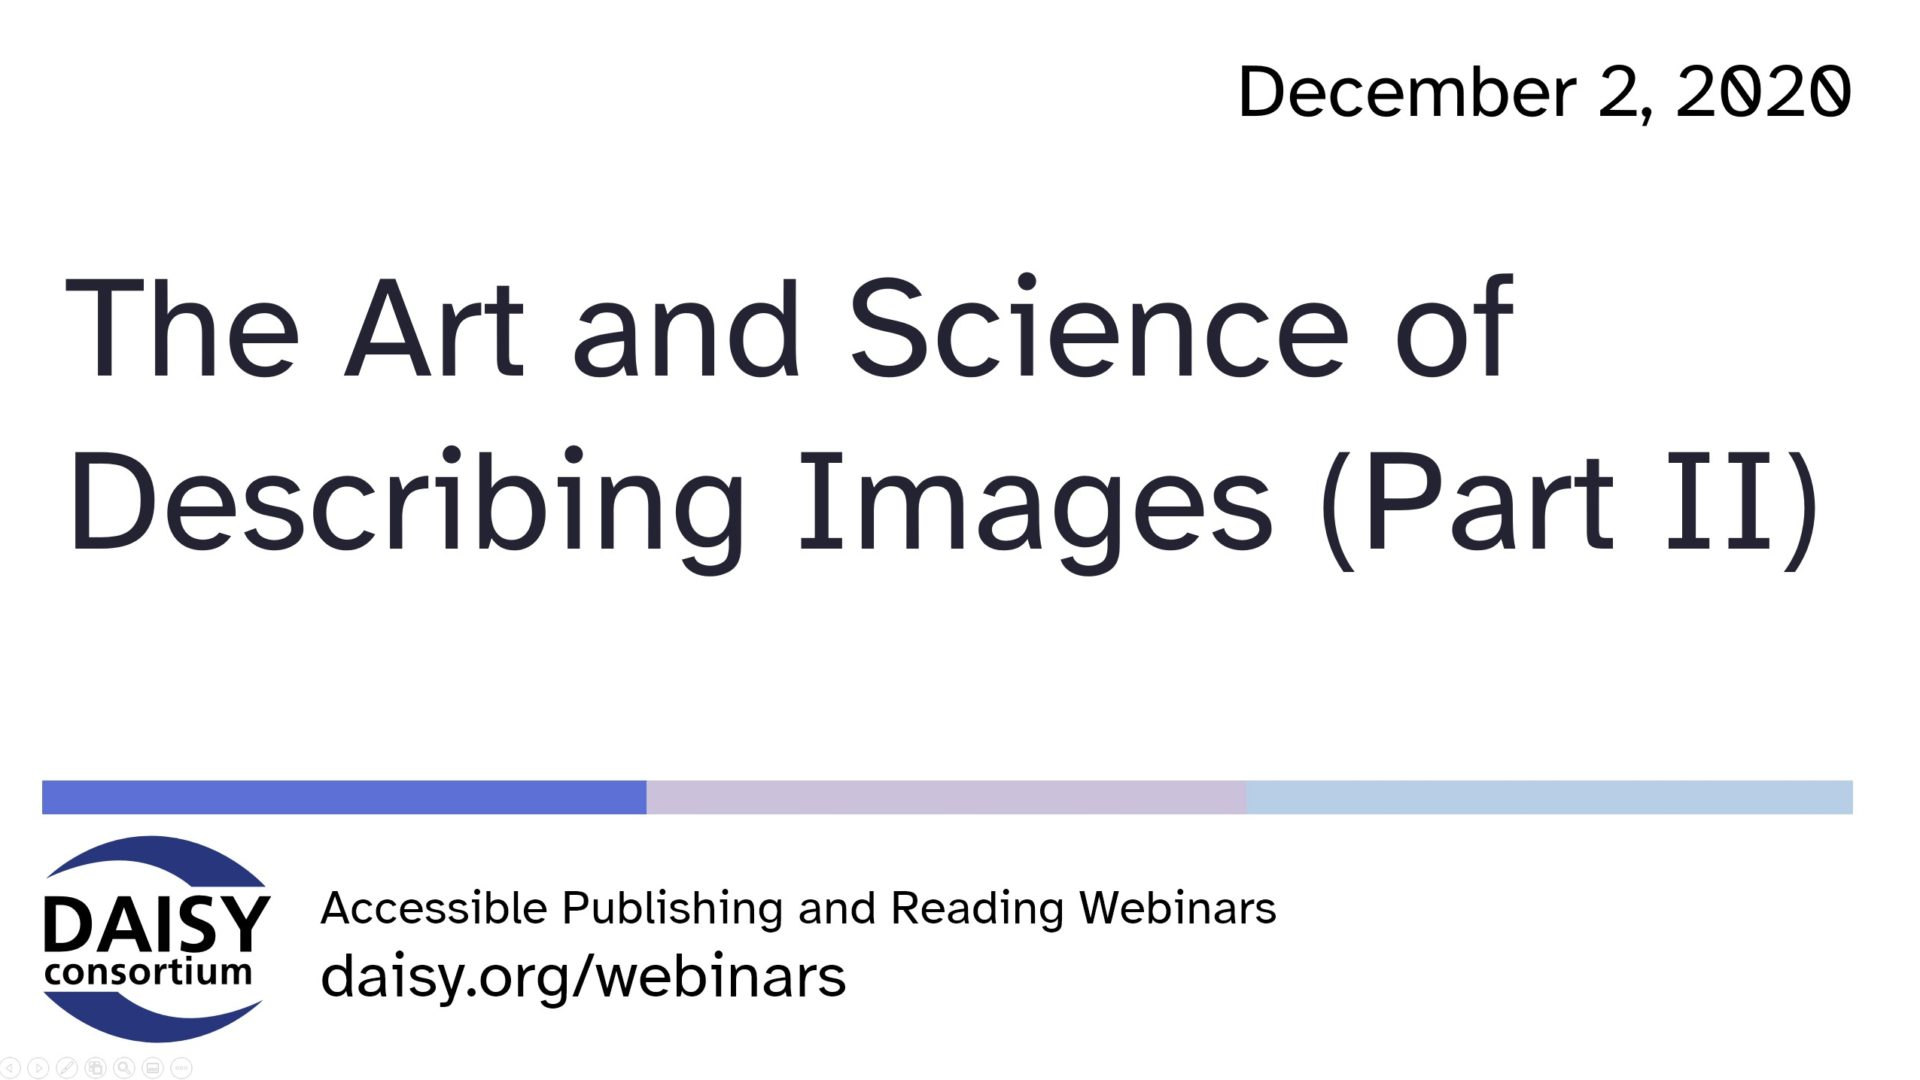 Art and Science of Describing Images Part Two opening slide